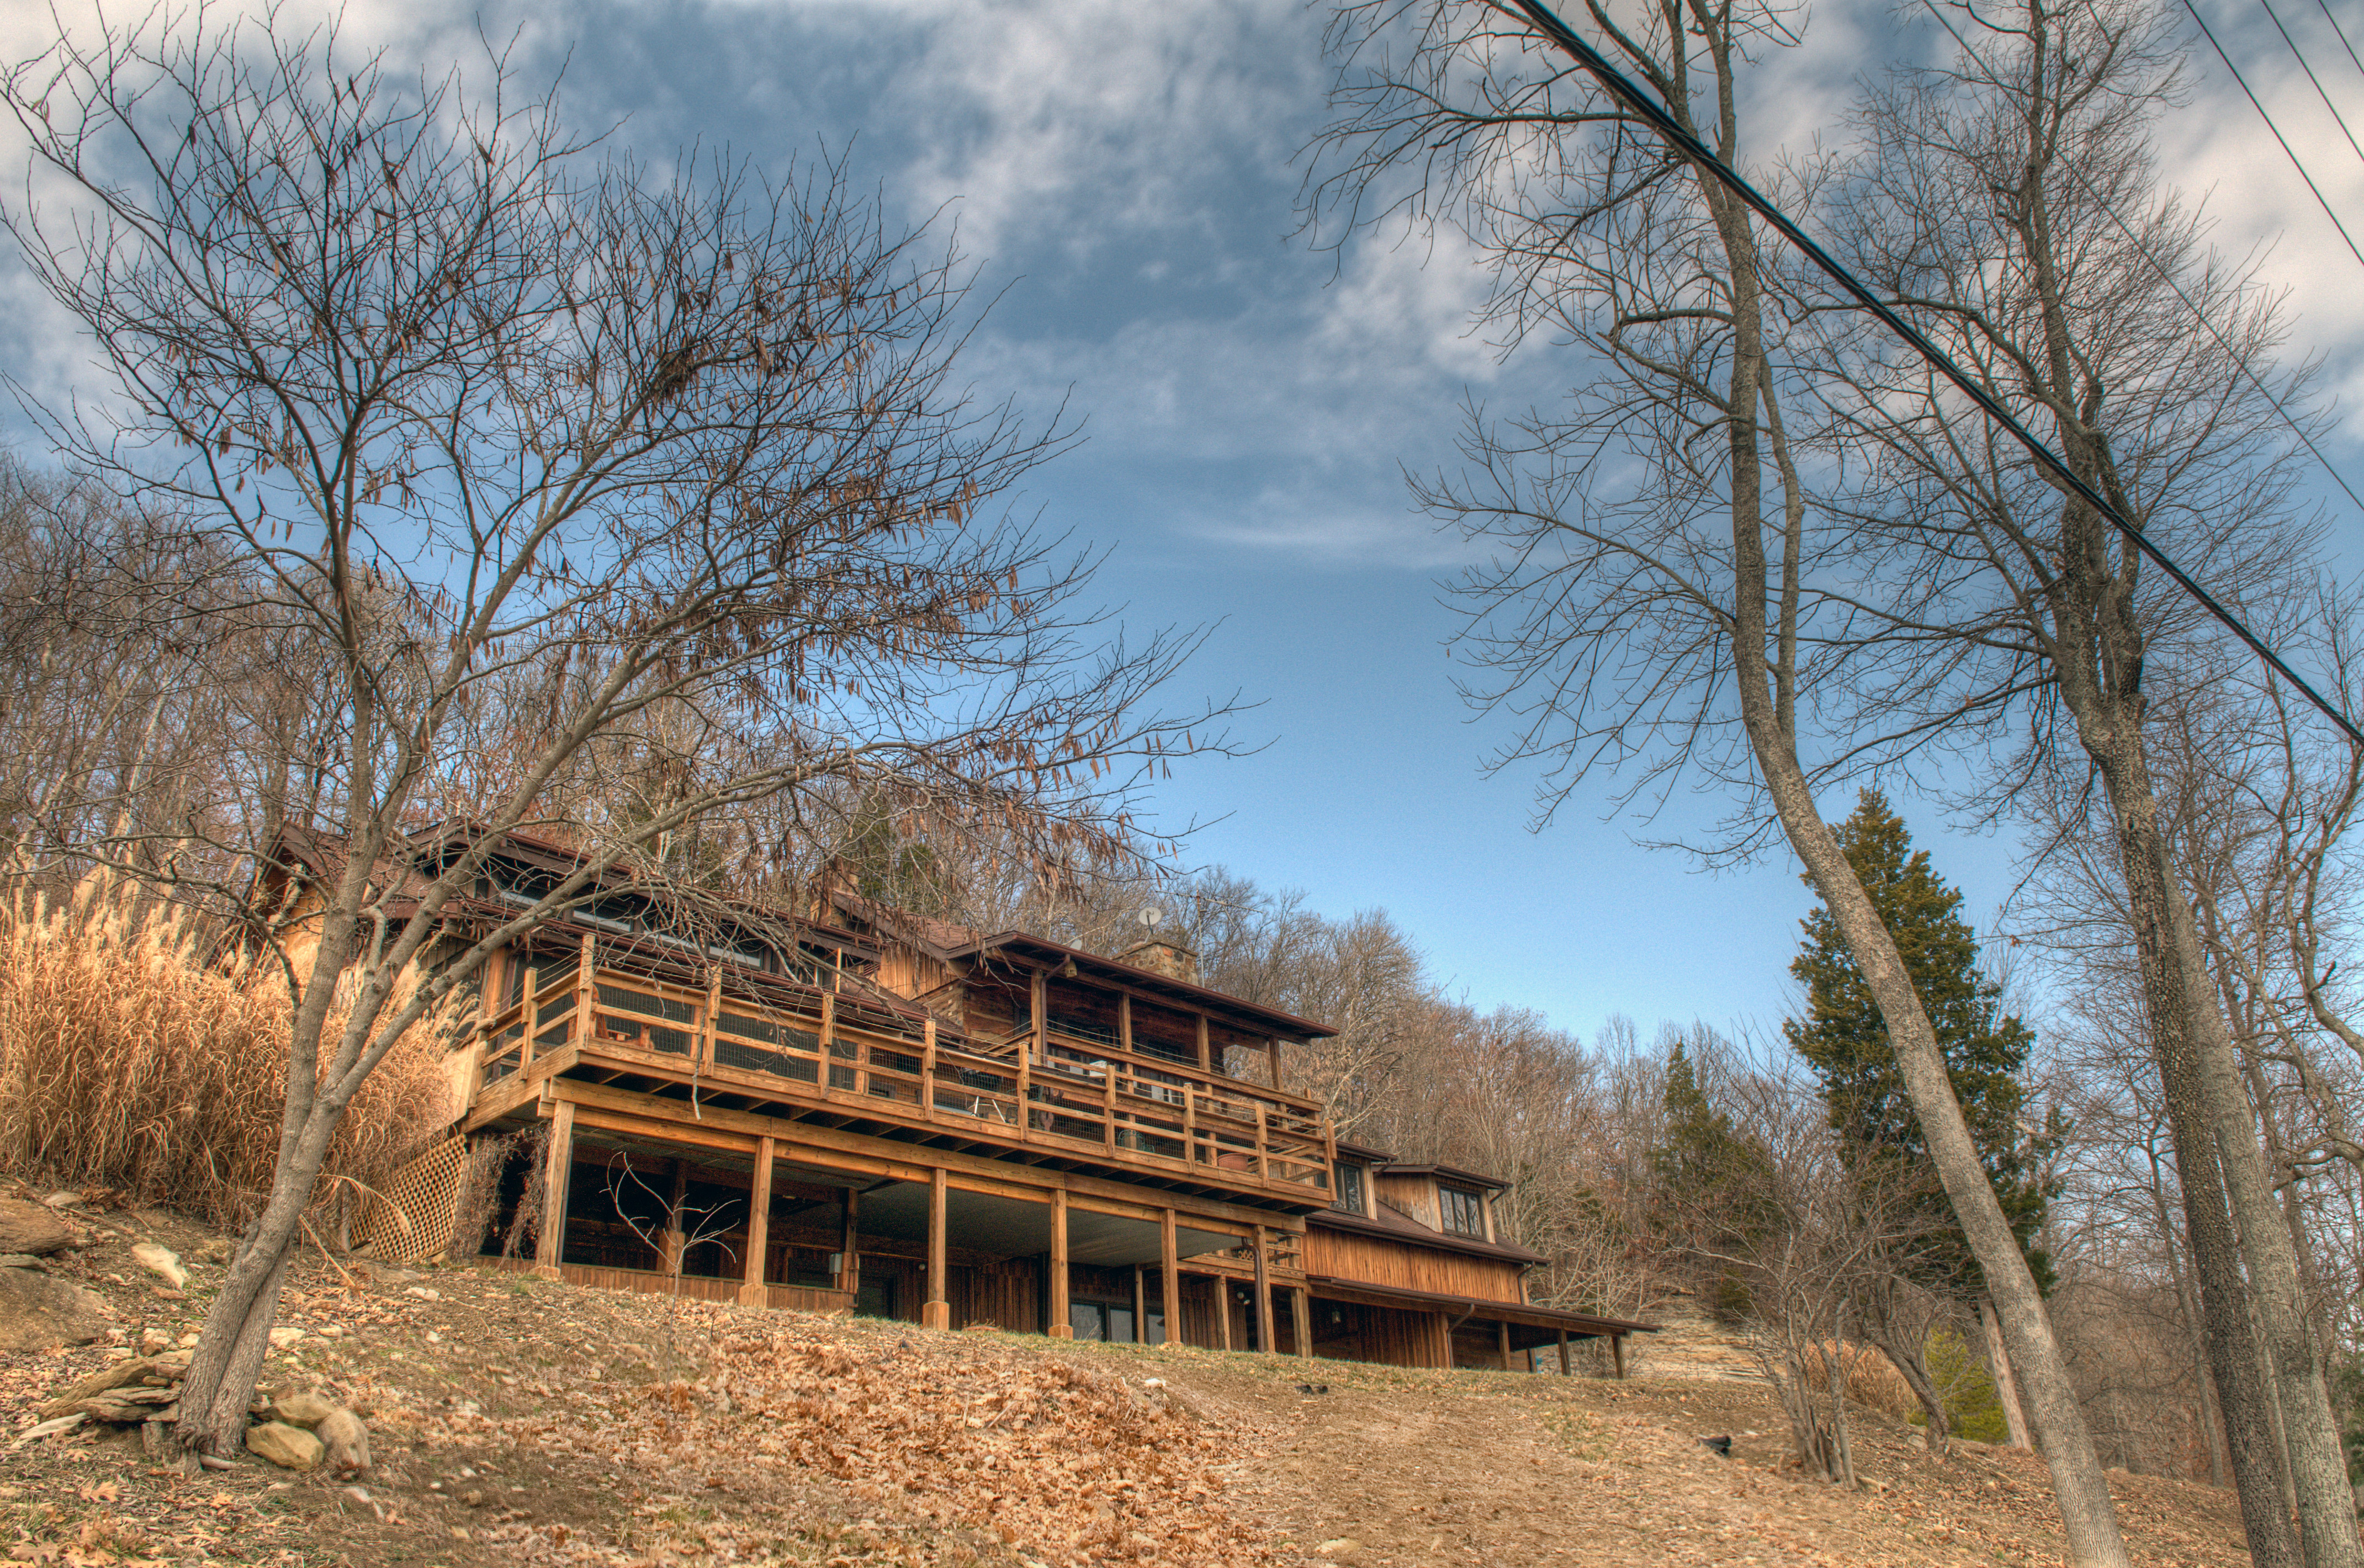 Indiana perry county cannelton - Cabin View Indiana Deck Derby Hdr Photomatrix